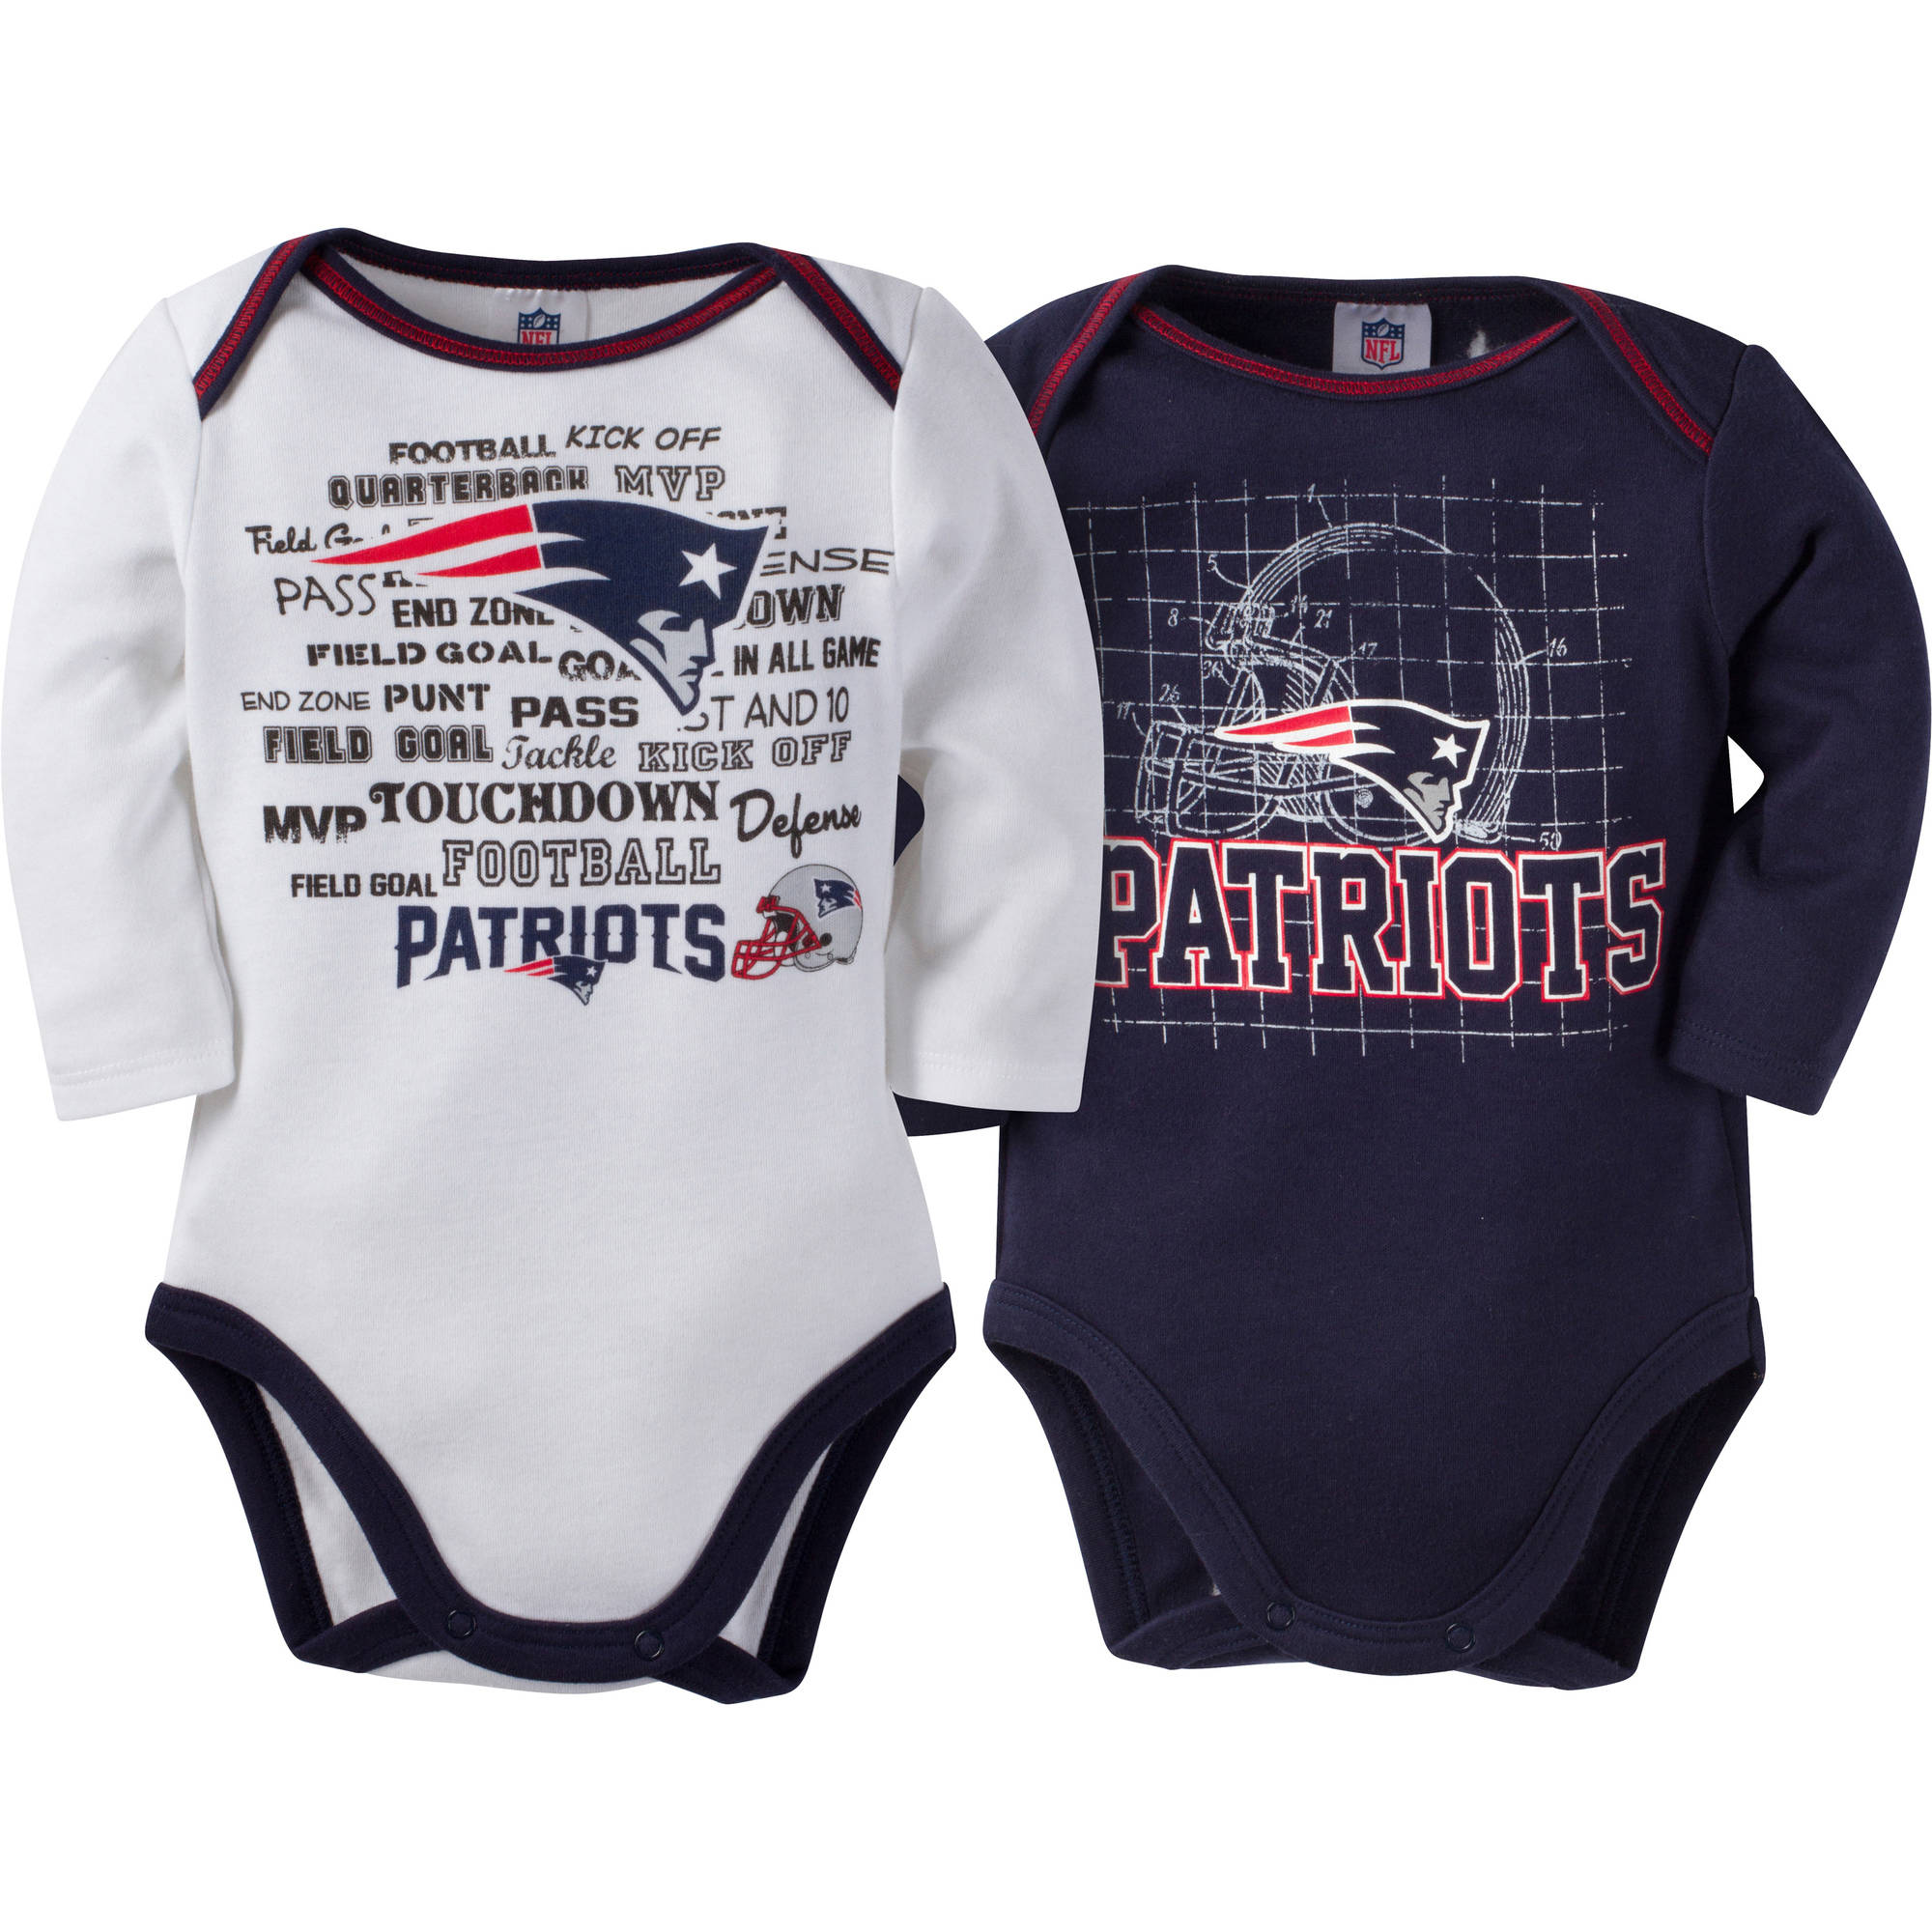 NFL New England Patriots Baby Boys Long Sleeve Bodysuit Set, 2-Pack